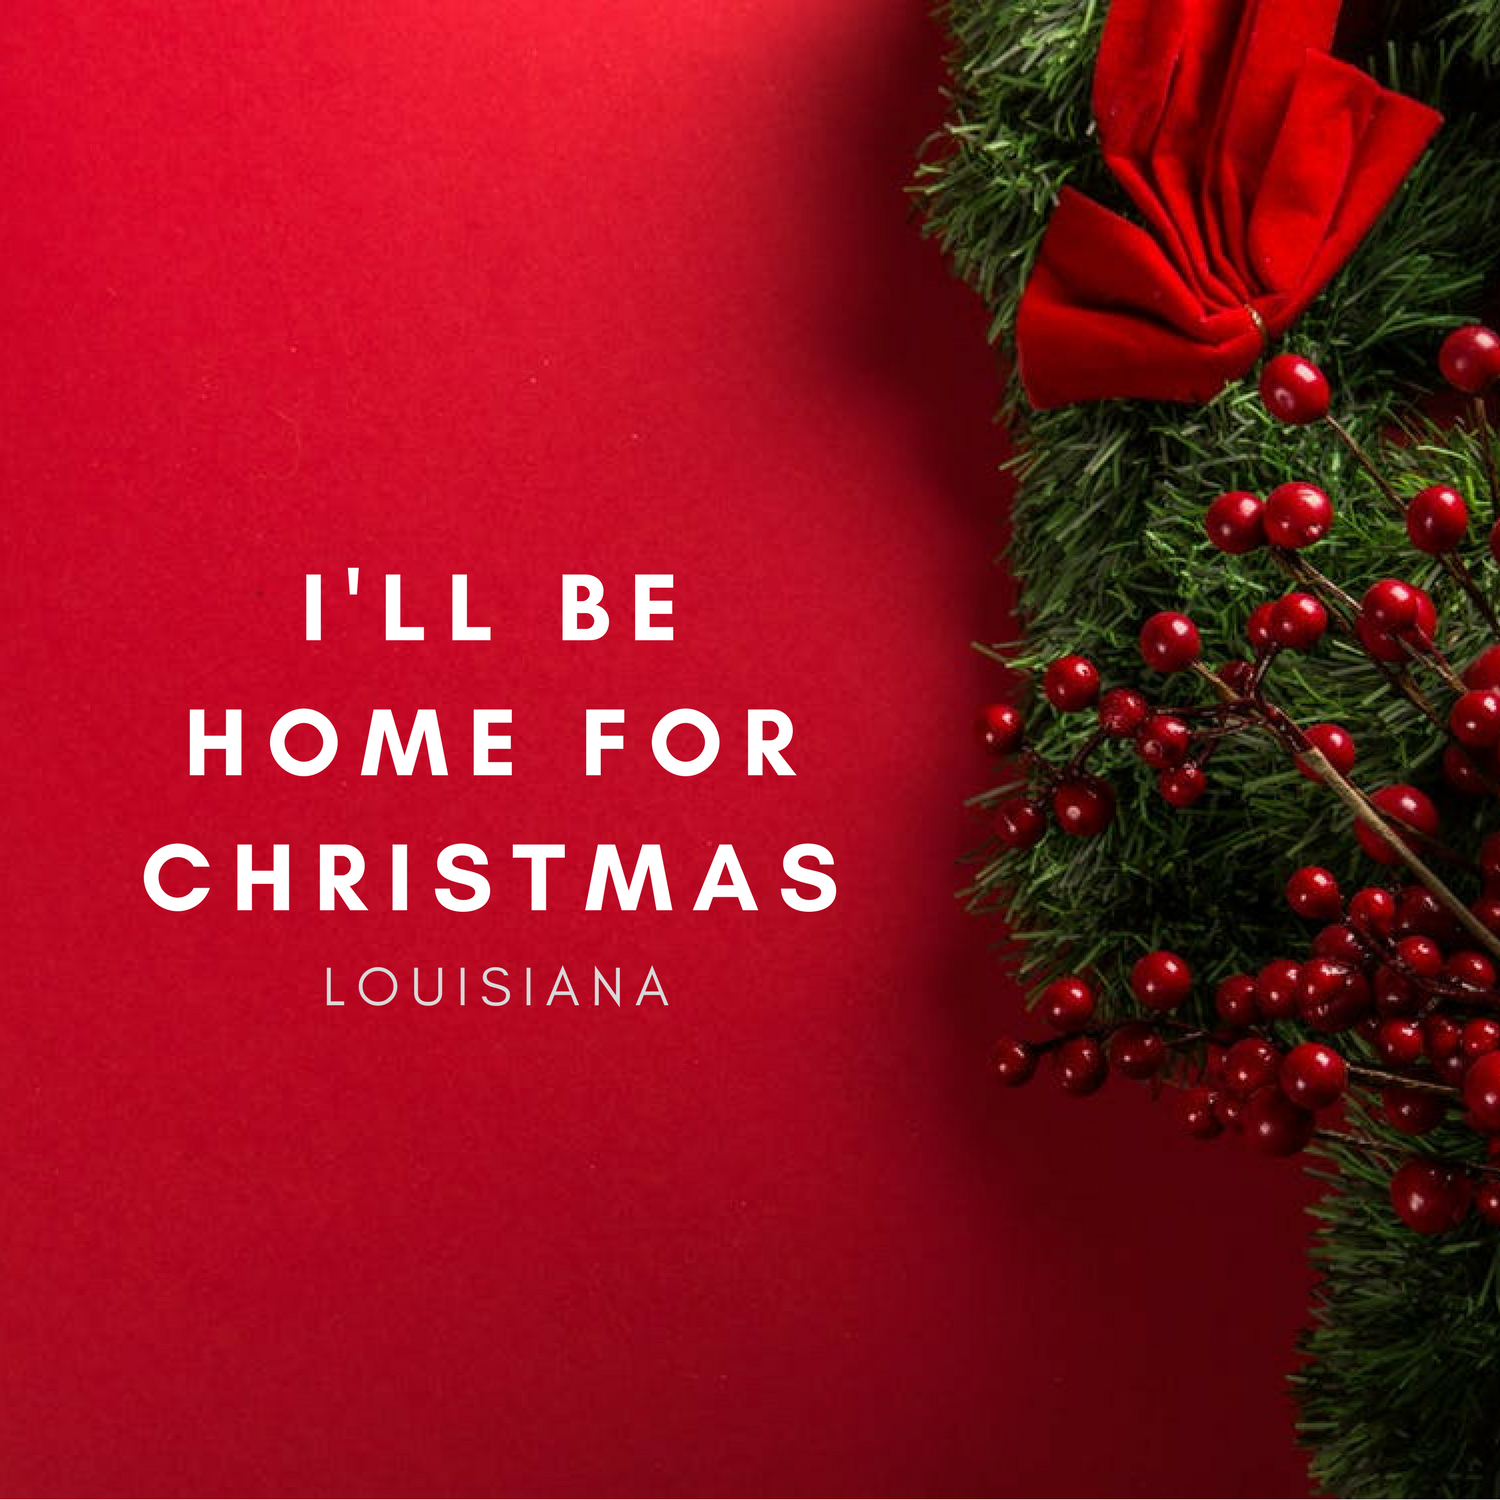 i'll be home for christmas (1).png